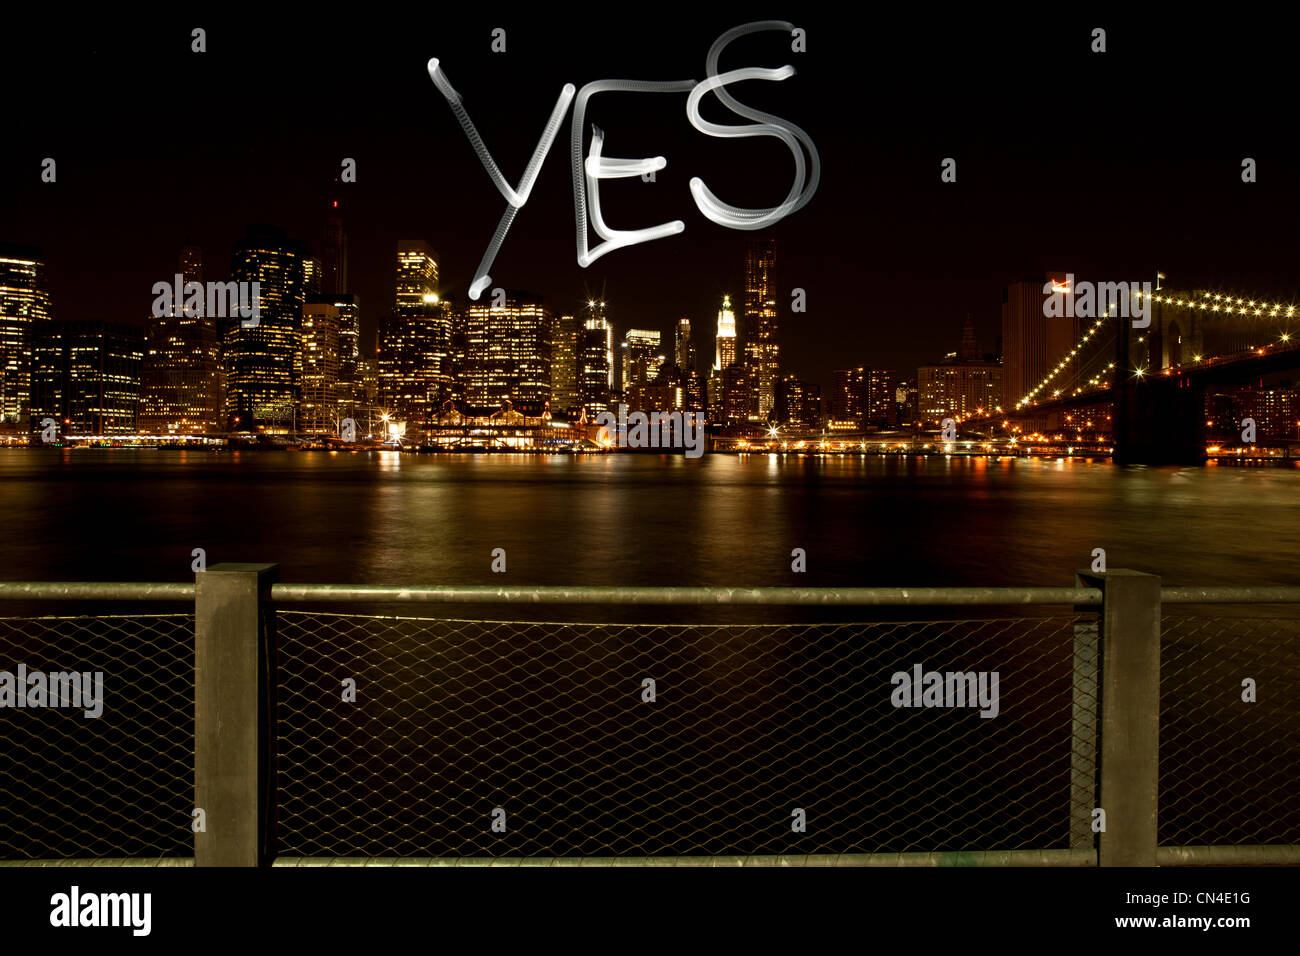 Yes written by light trail at night Stock Photo